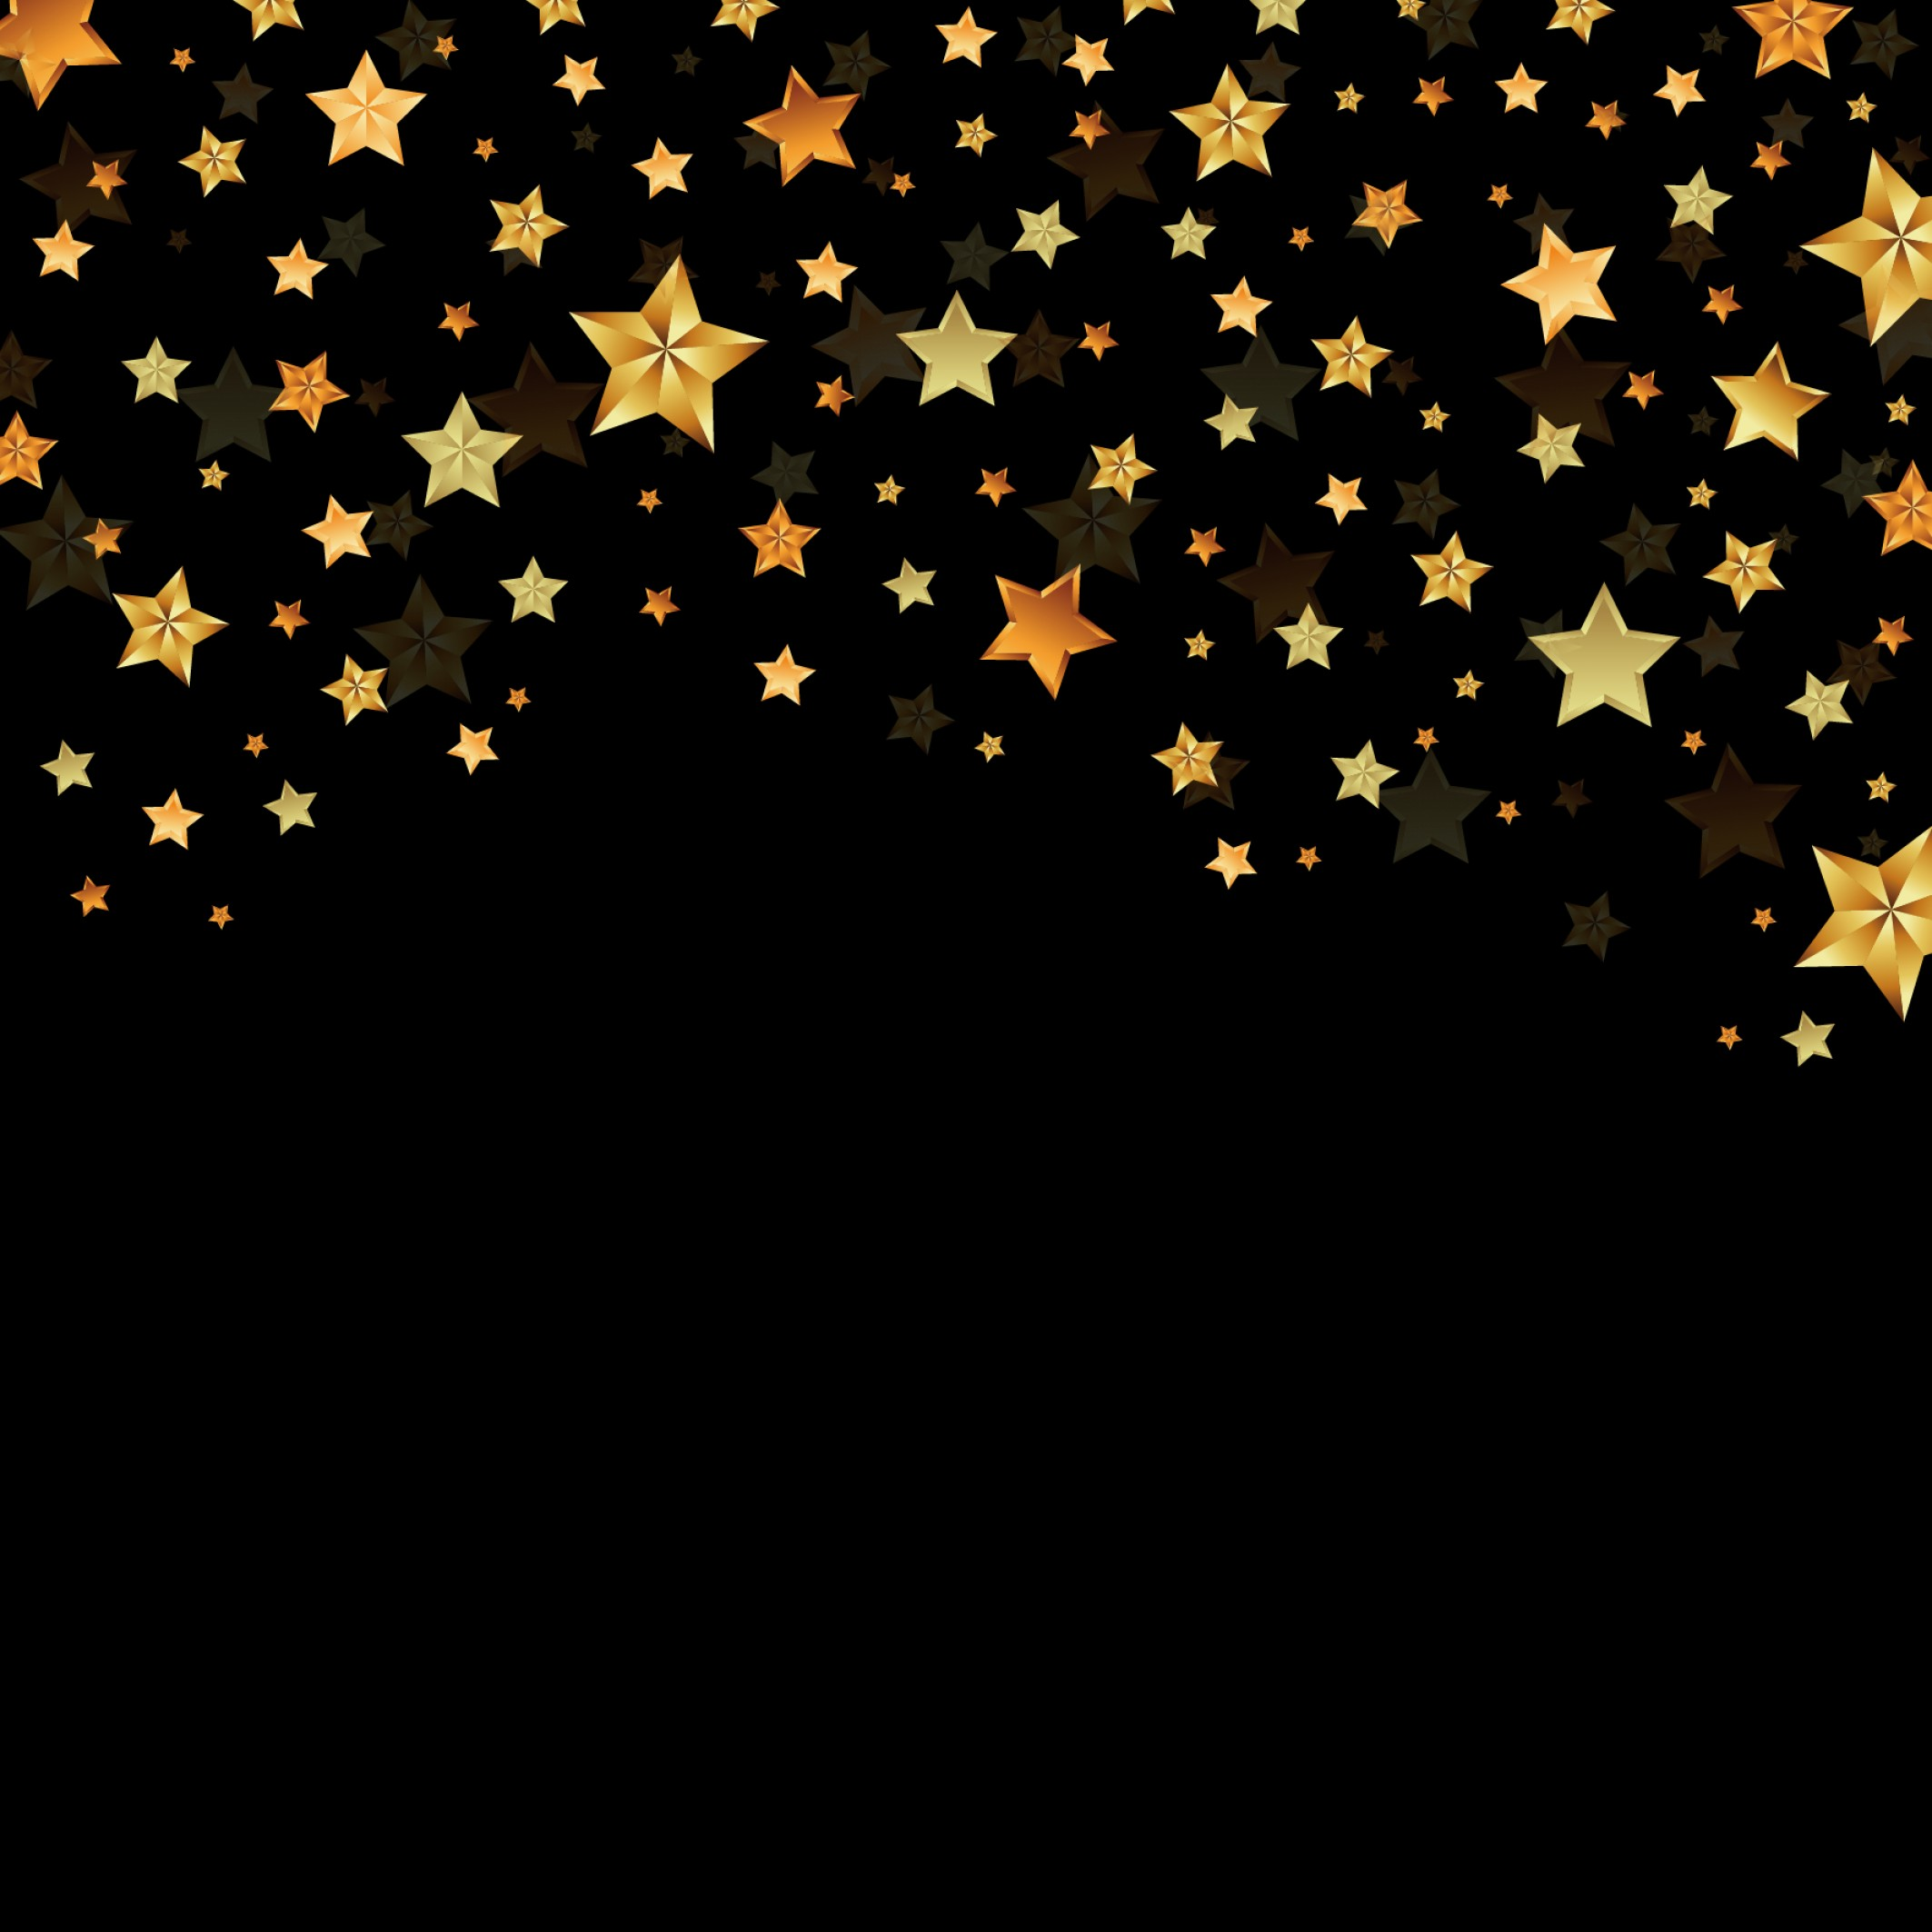 Free Vector Star: Euclidean Vector Star Stars Golden Png Download Free